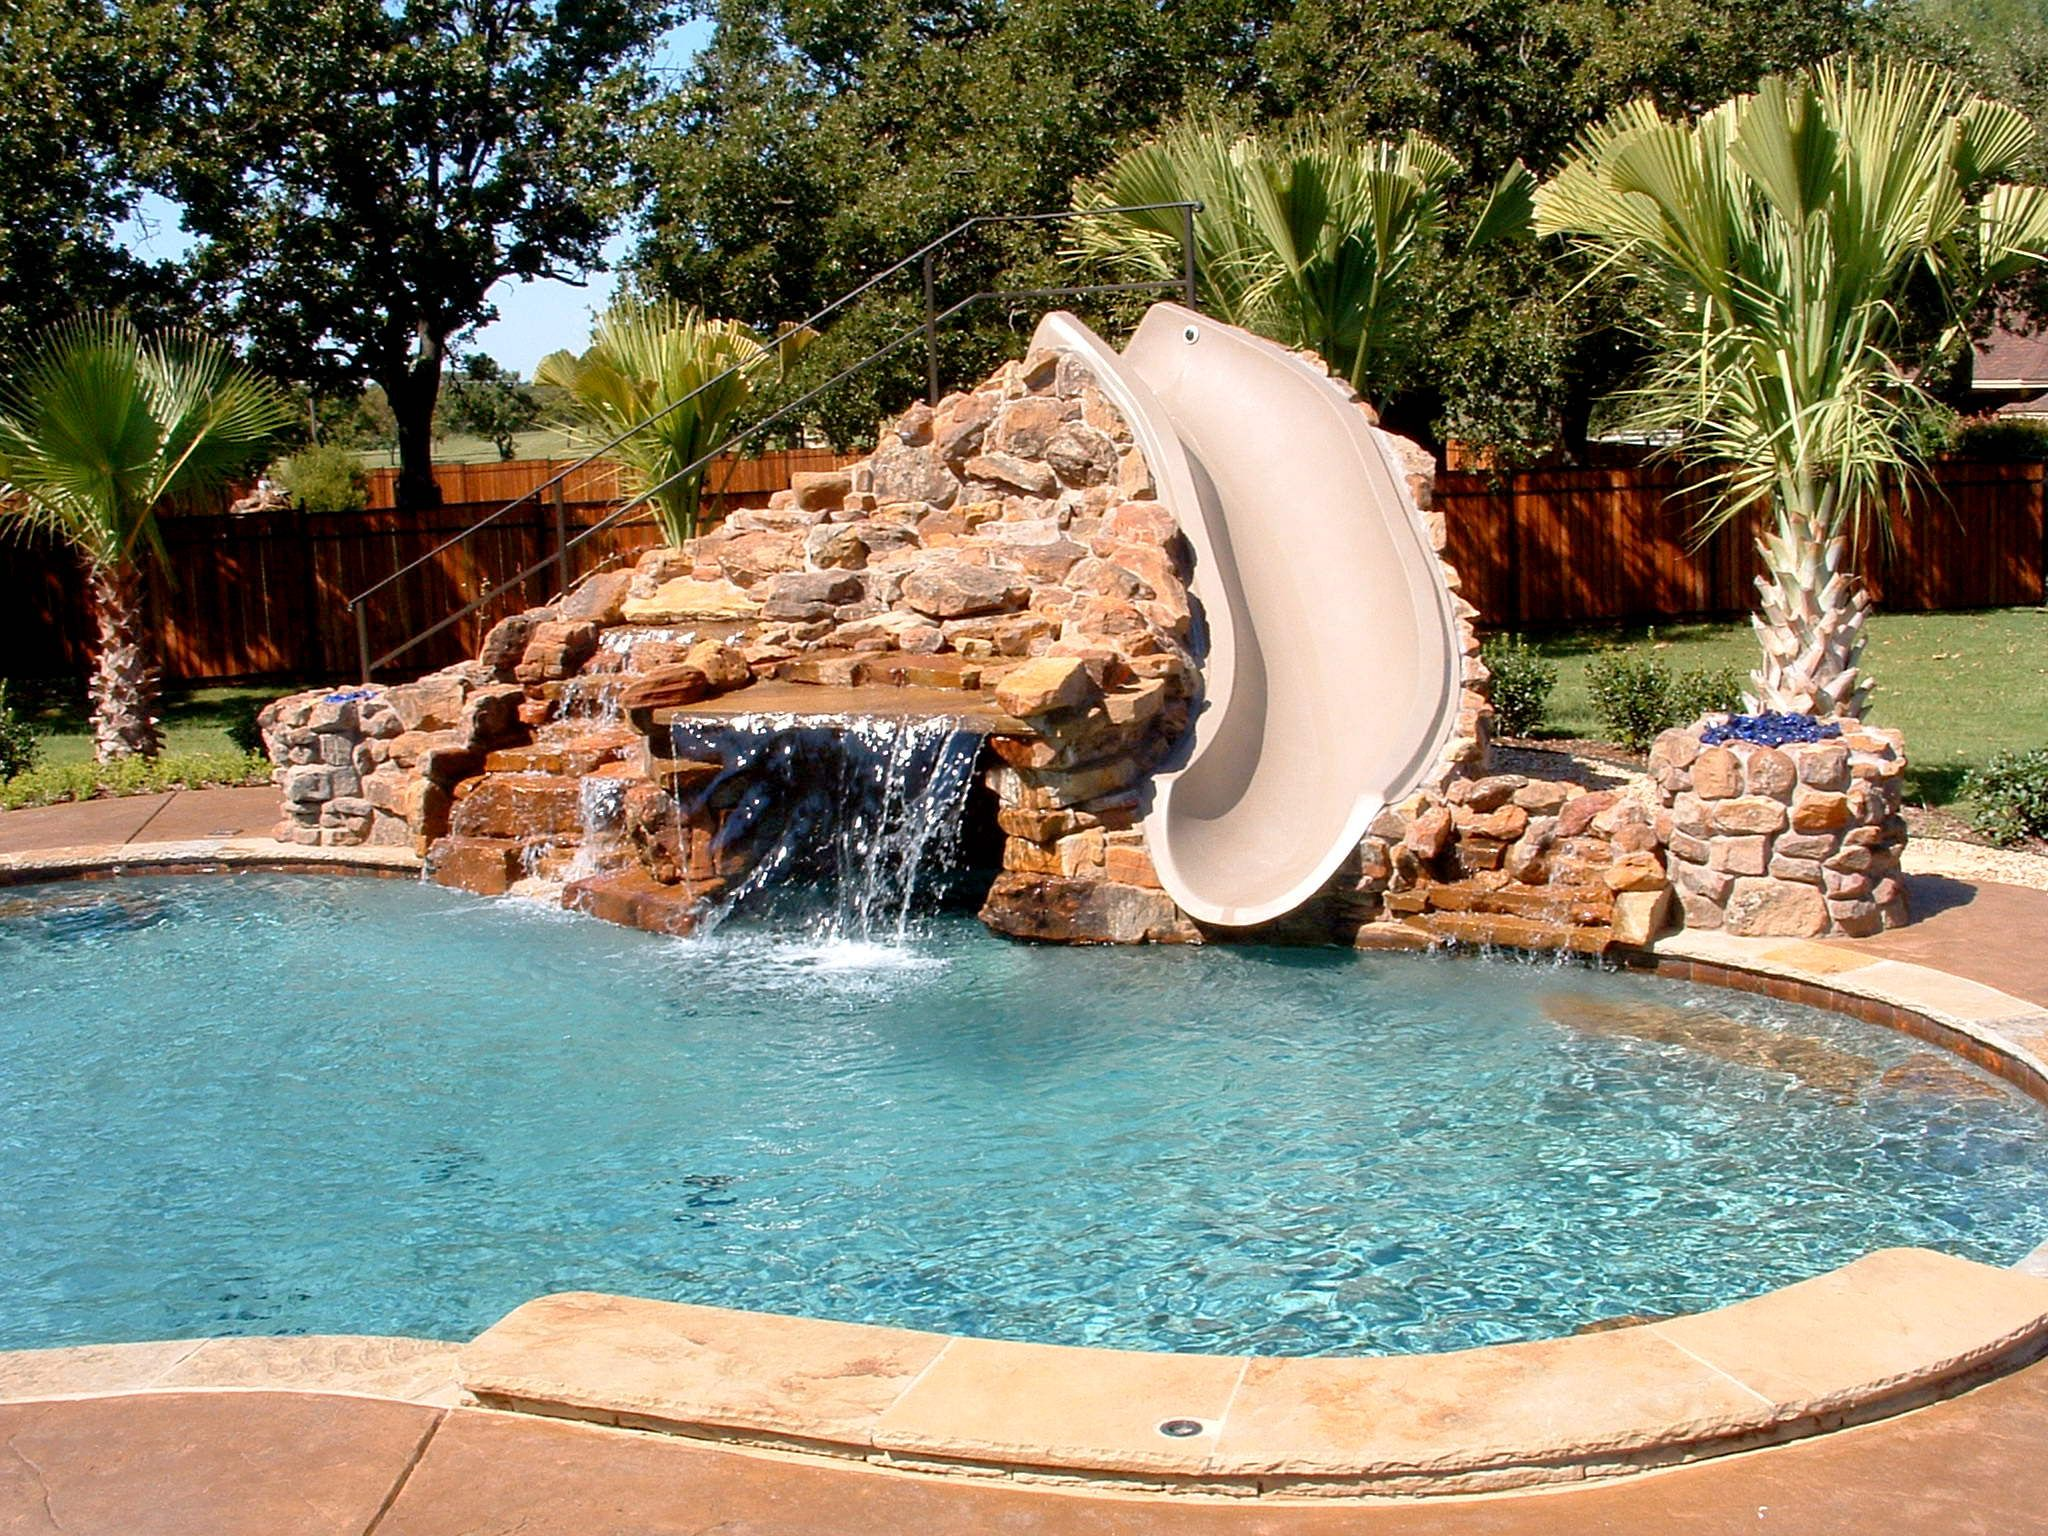 Swimming pools pool custom features beach entry slide bench additions swimming pool Beach entry swimming pool designs